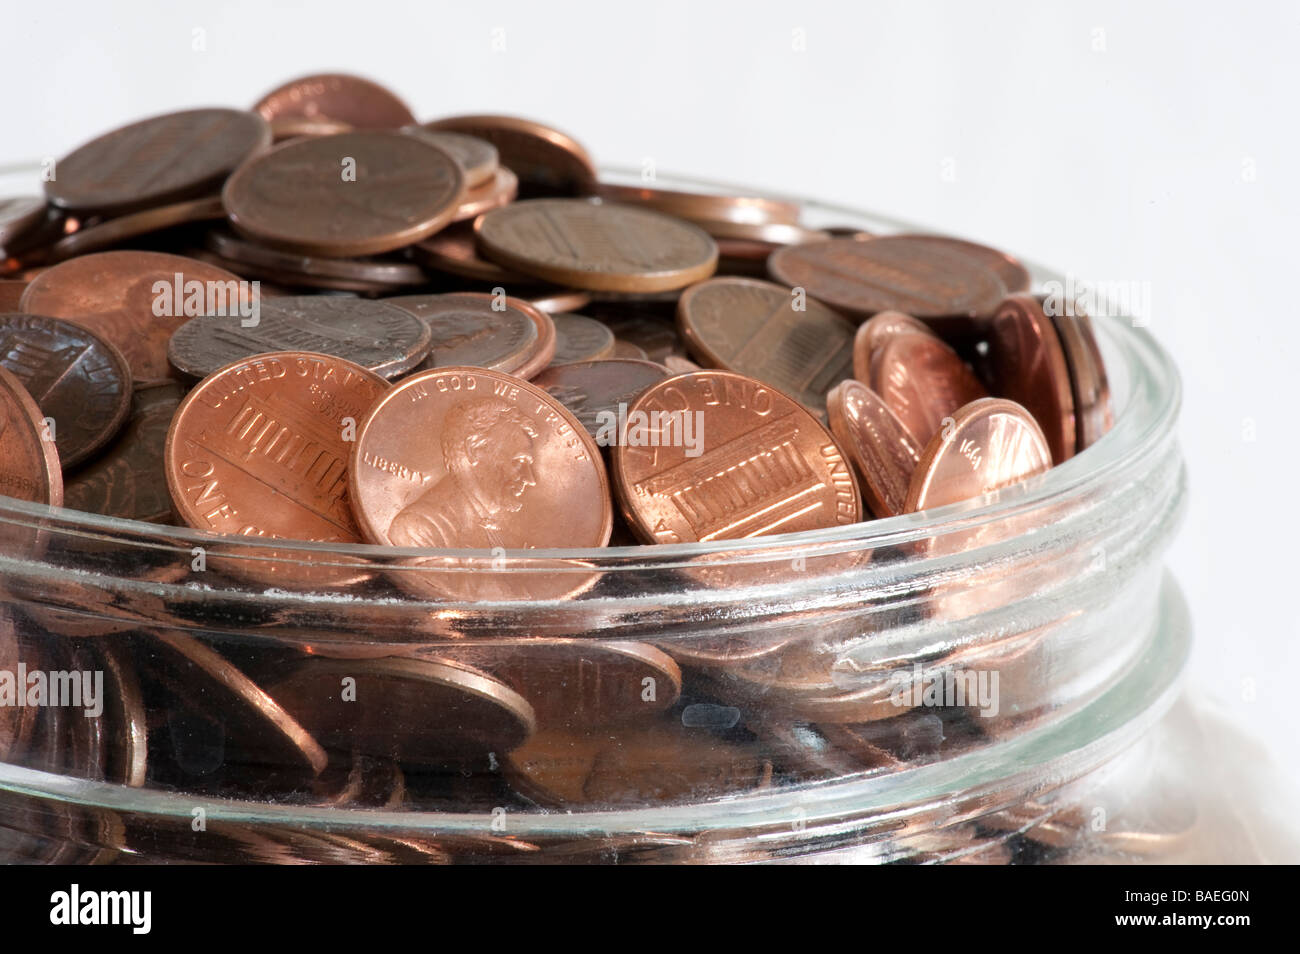 glass jar with pennies - Stock Image